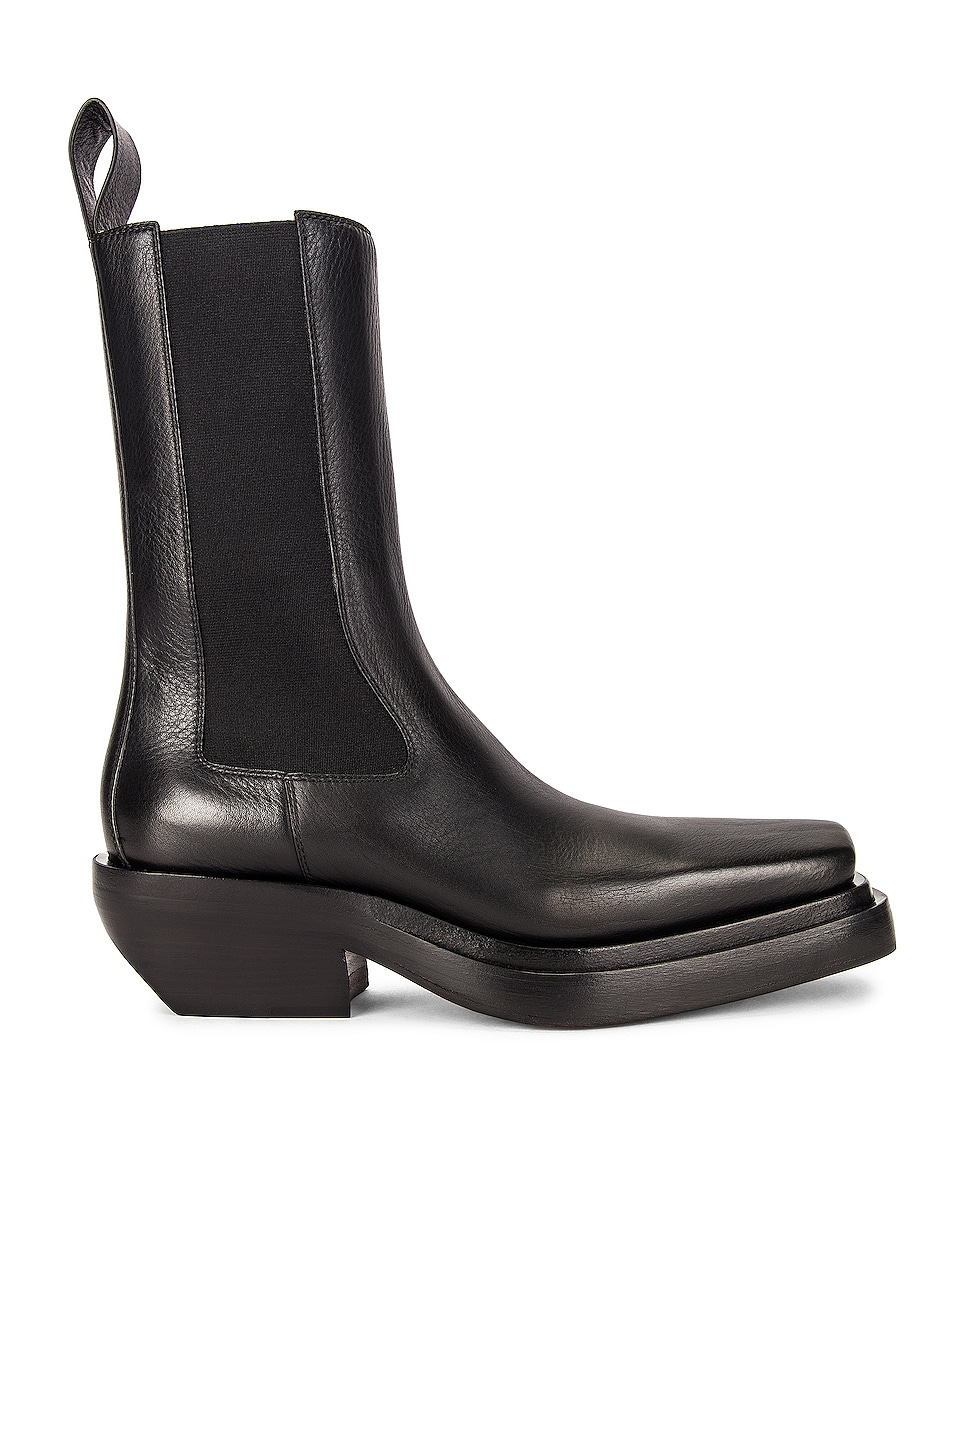 Image 1 of Bottega Veneta BV Lean Boots in Black